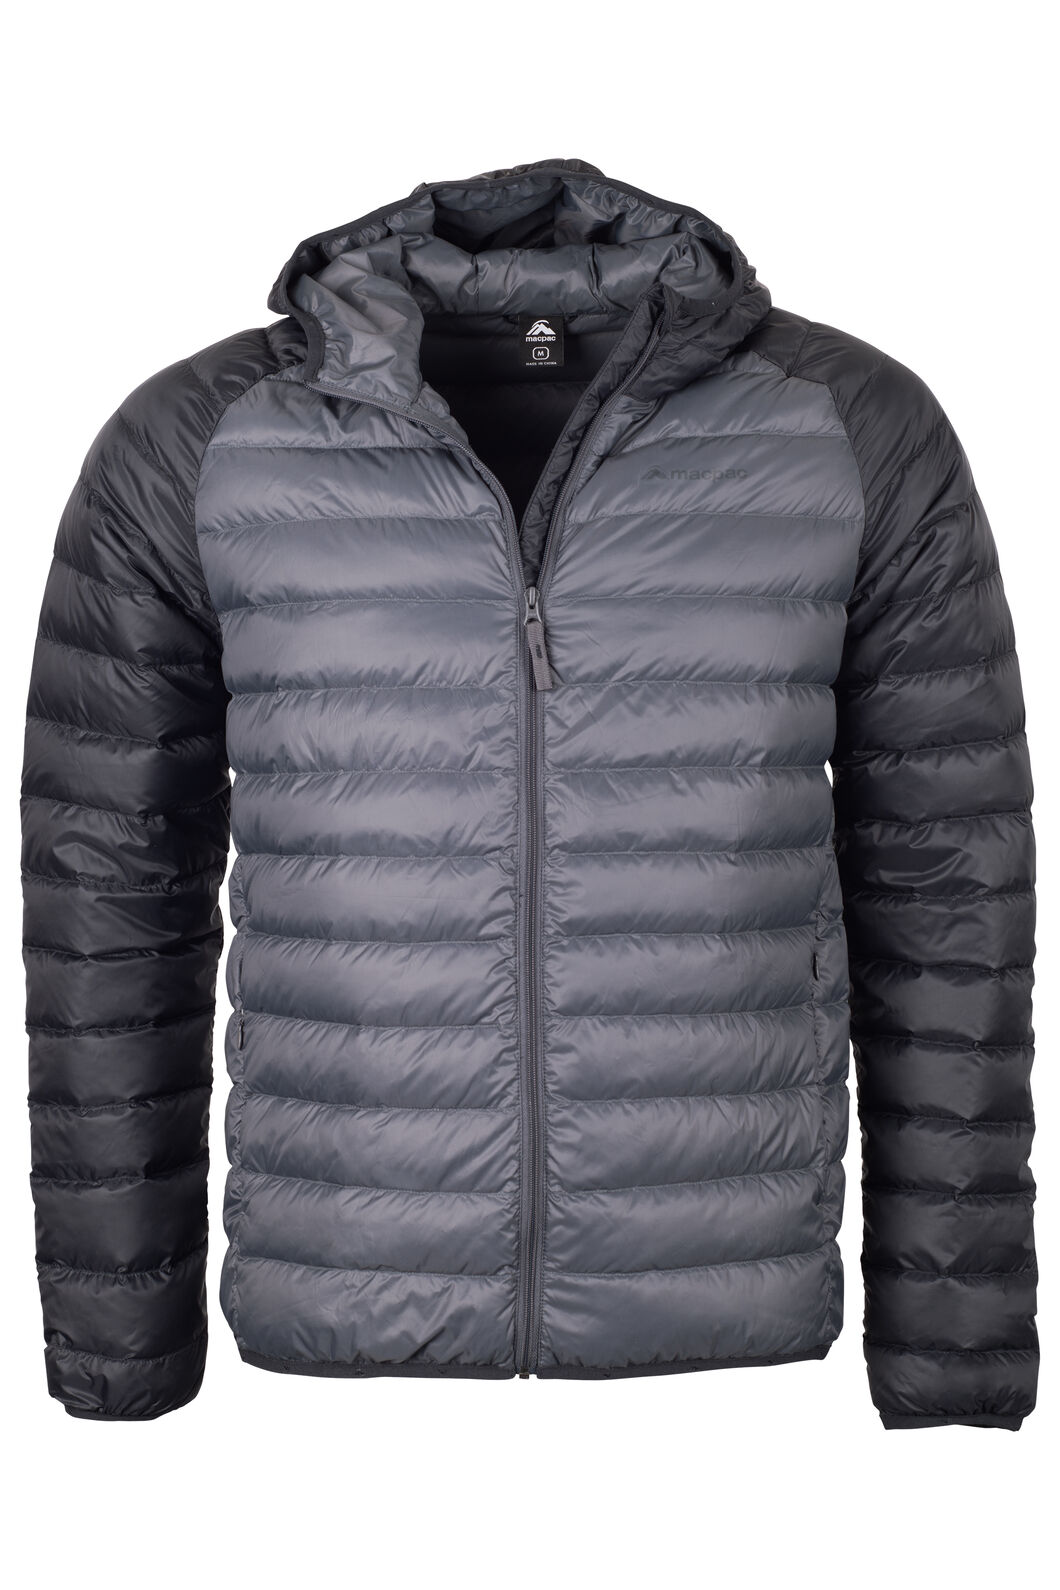 Macpac Uber Hooded Down Jacket - Men's, Asphalt, hi-res